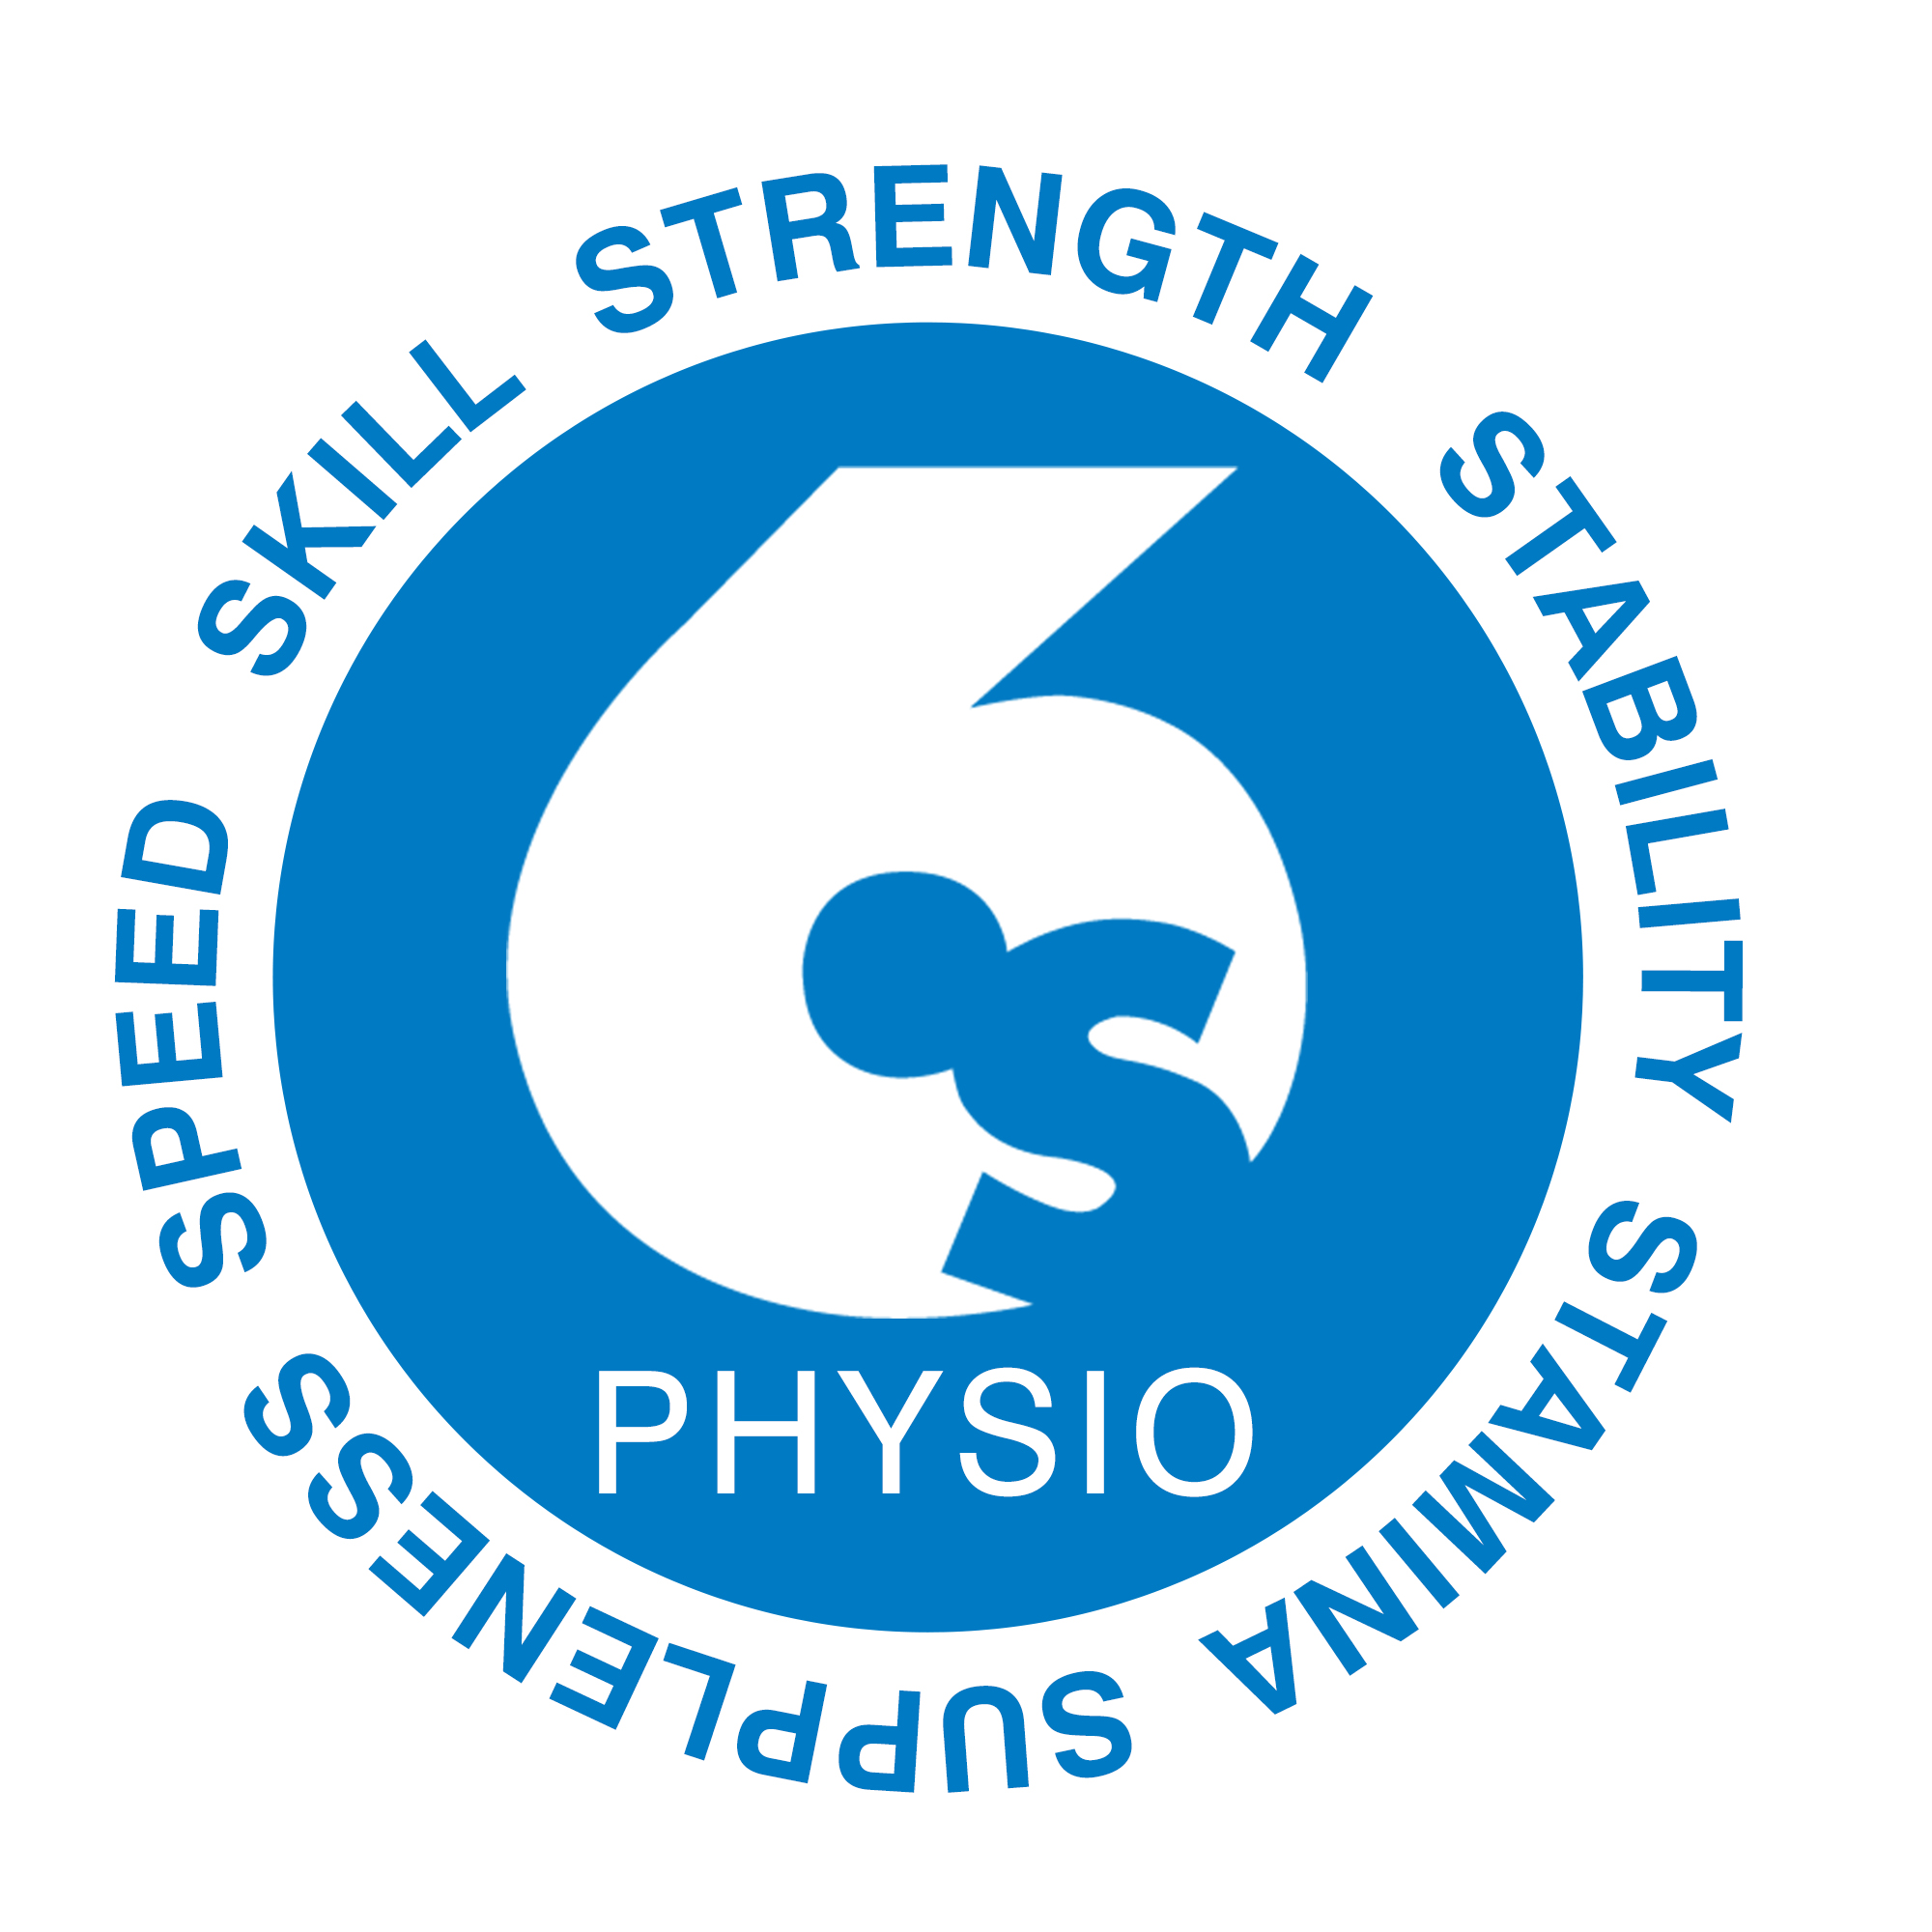 6S PHYSIO Umina Beach